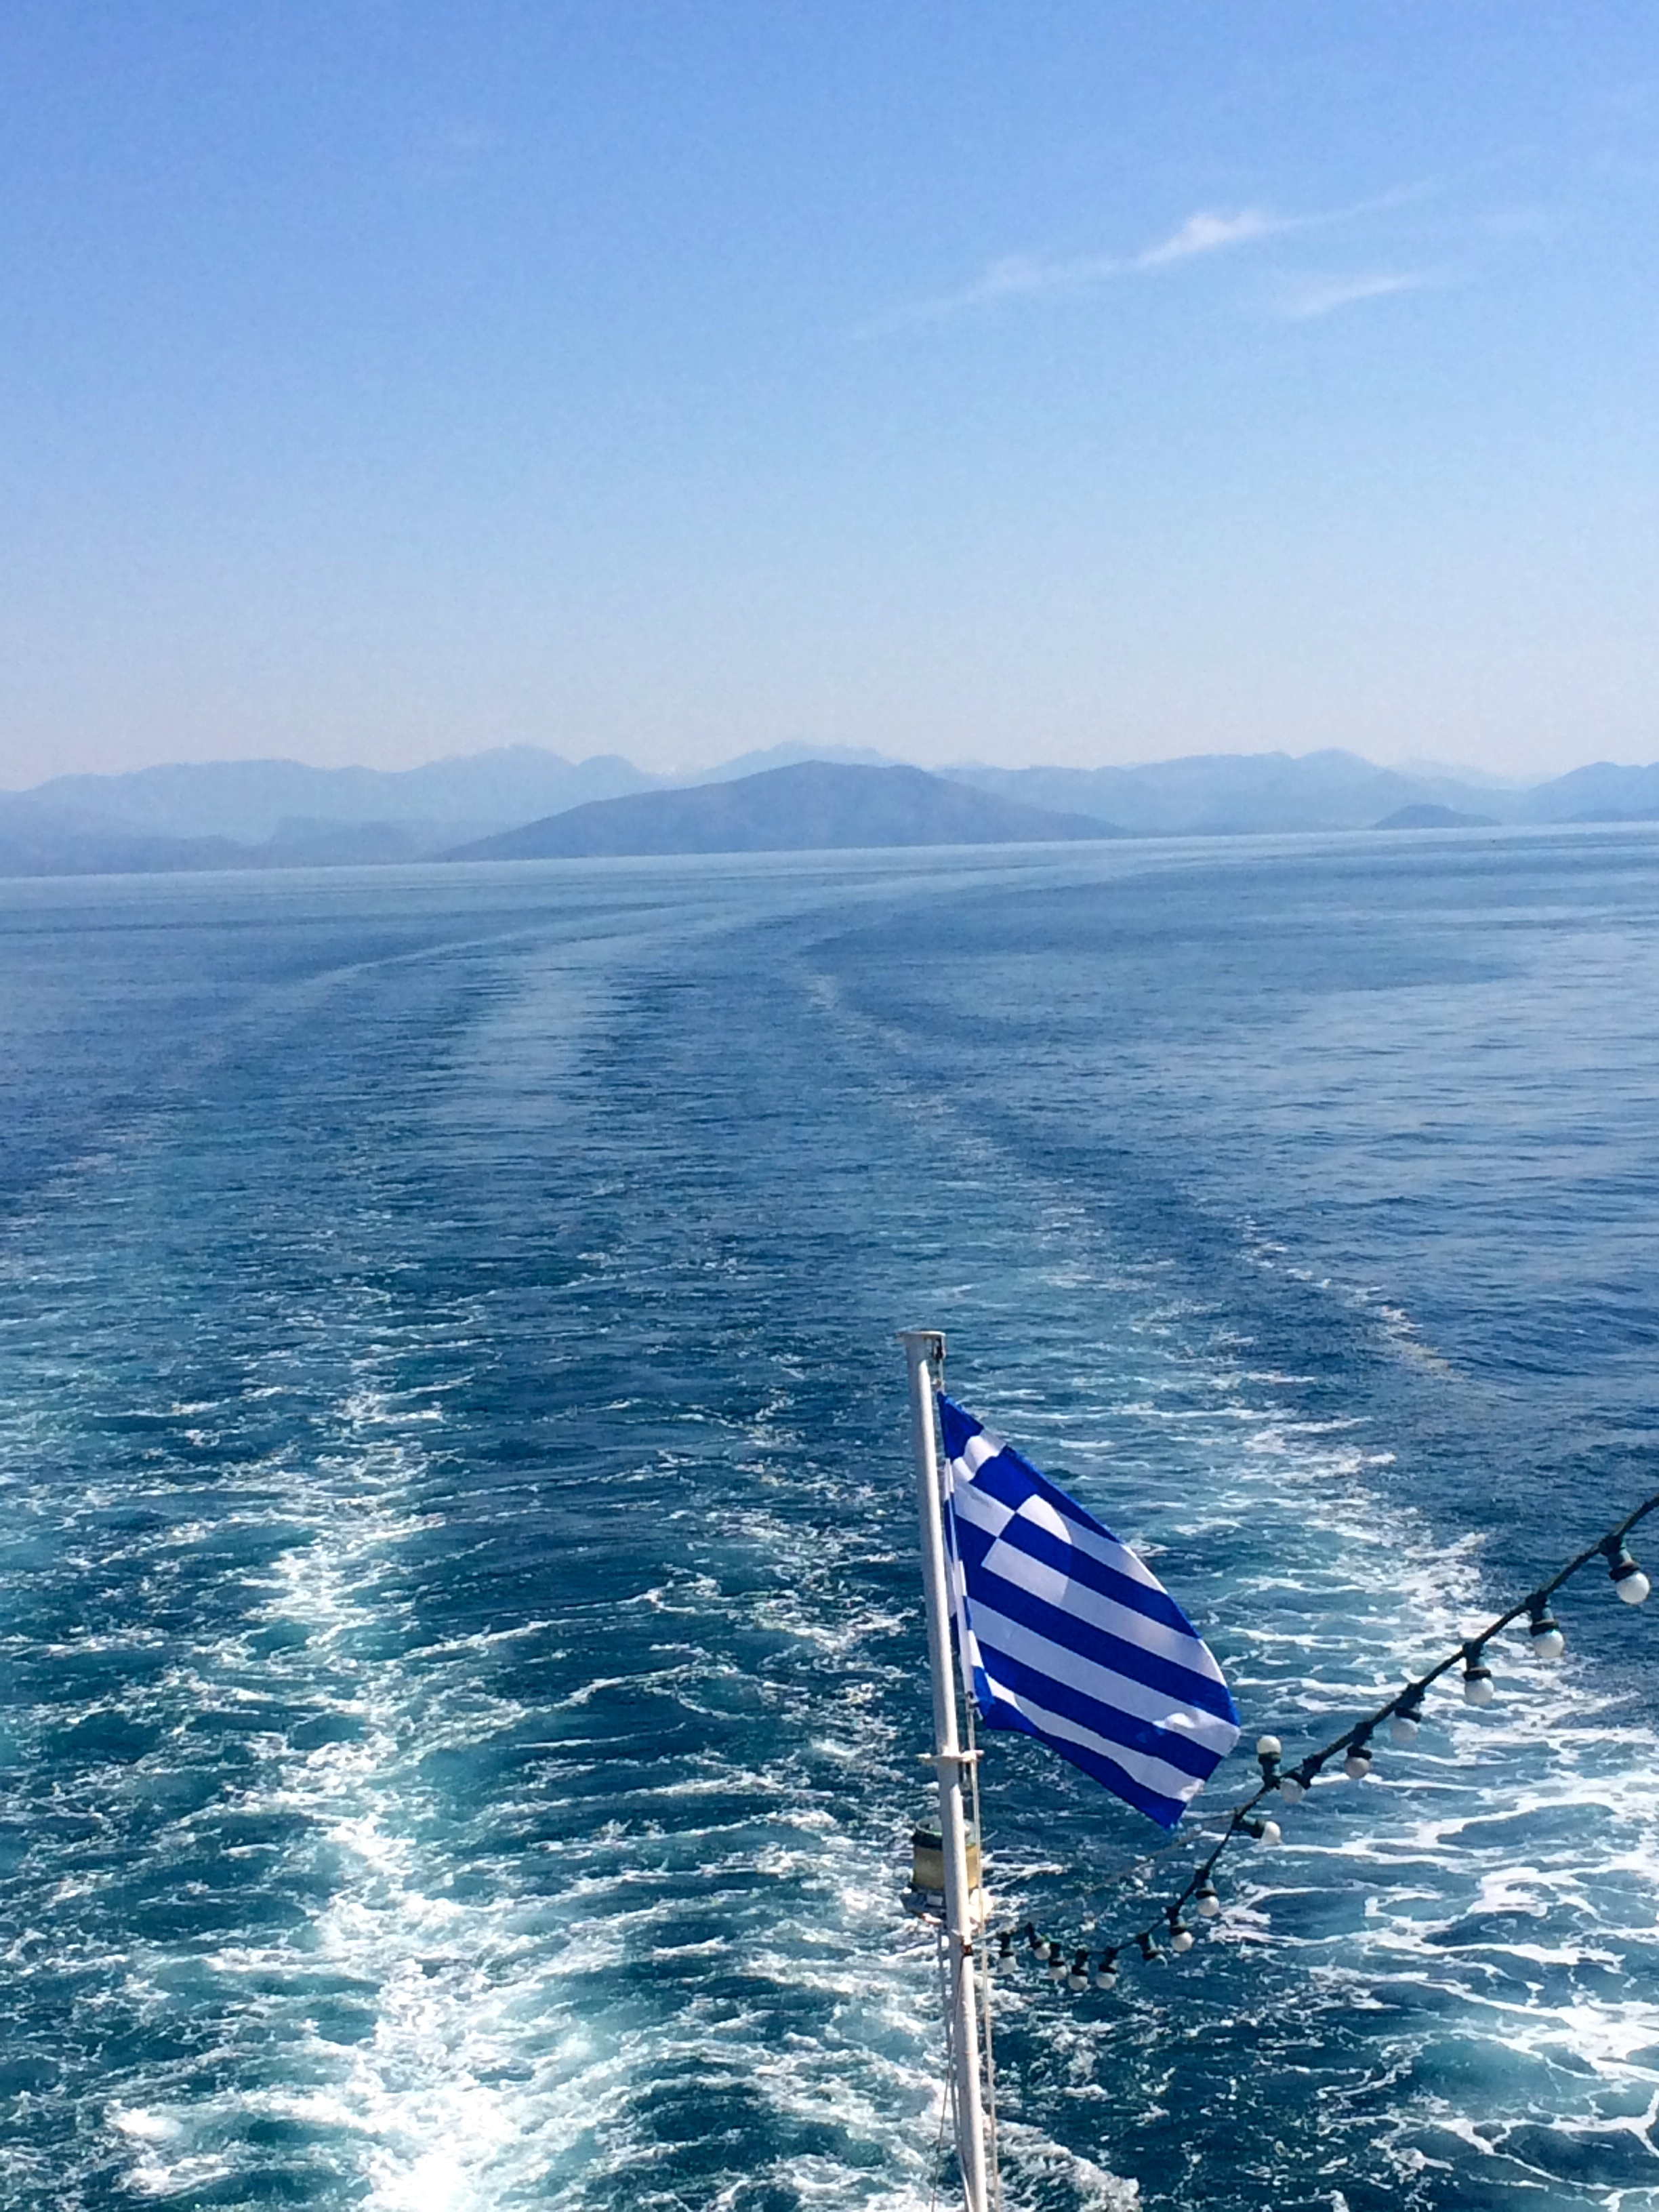 Our ferry headed for Corfu.